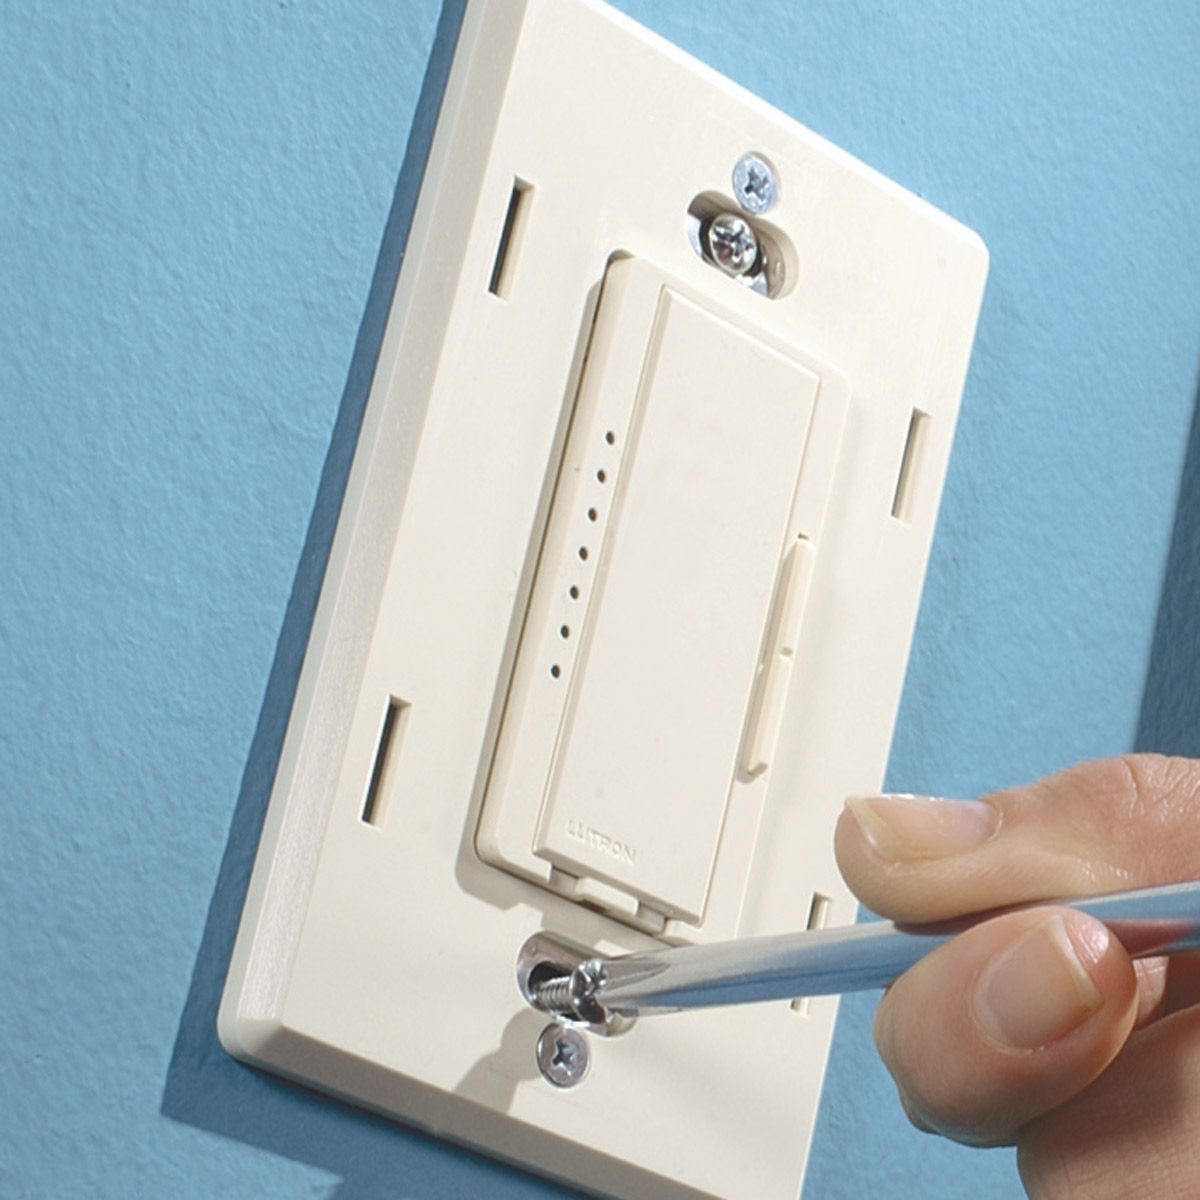 Add Dimmer Switches